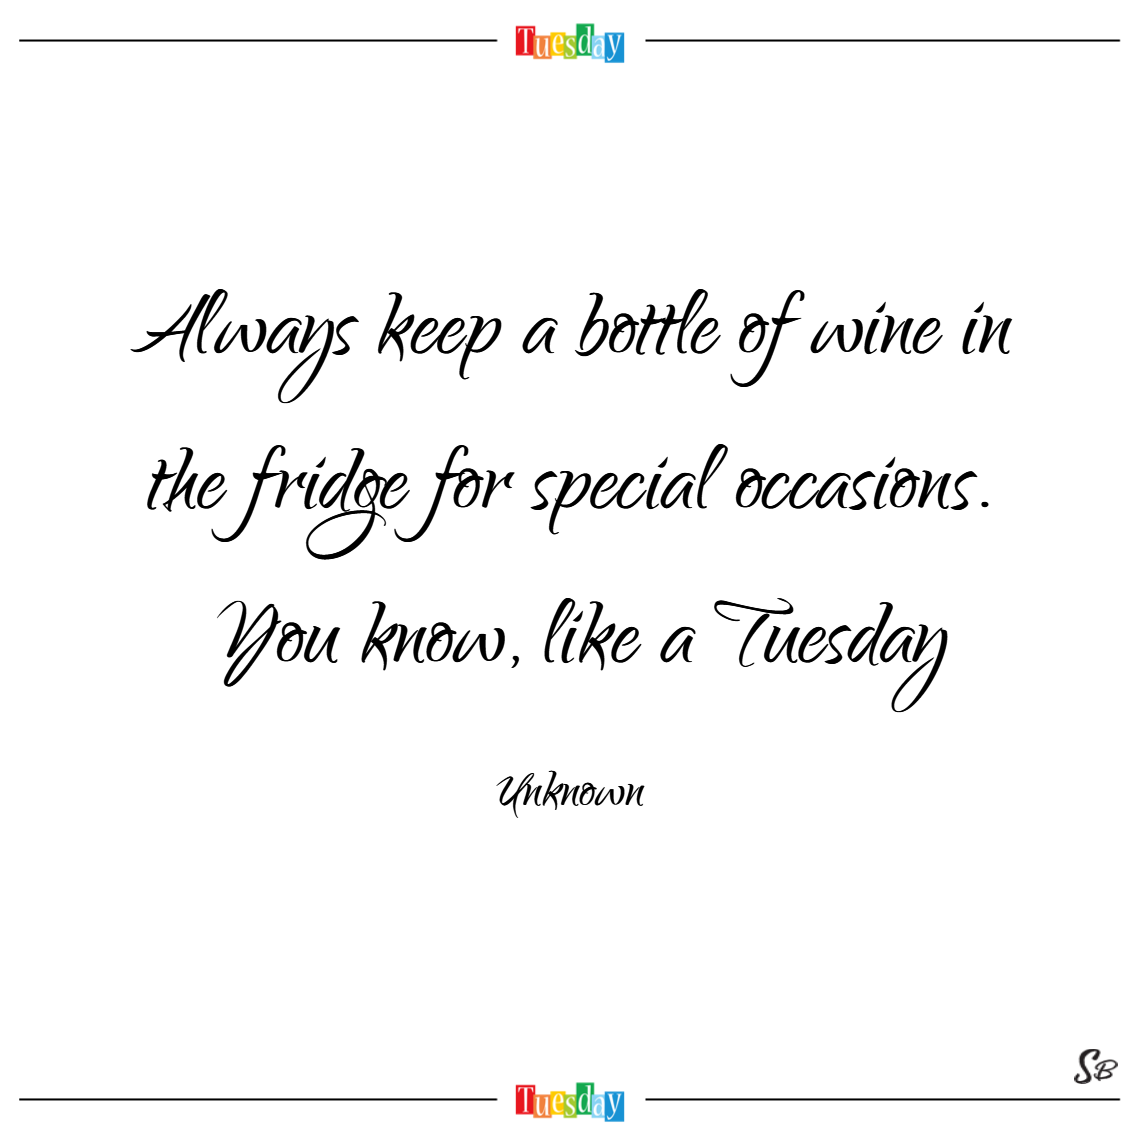 Always keep a bottle of wine in the fridge for special occasions. you know, like a tuesday. – unknown